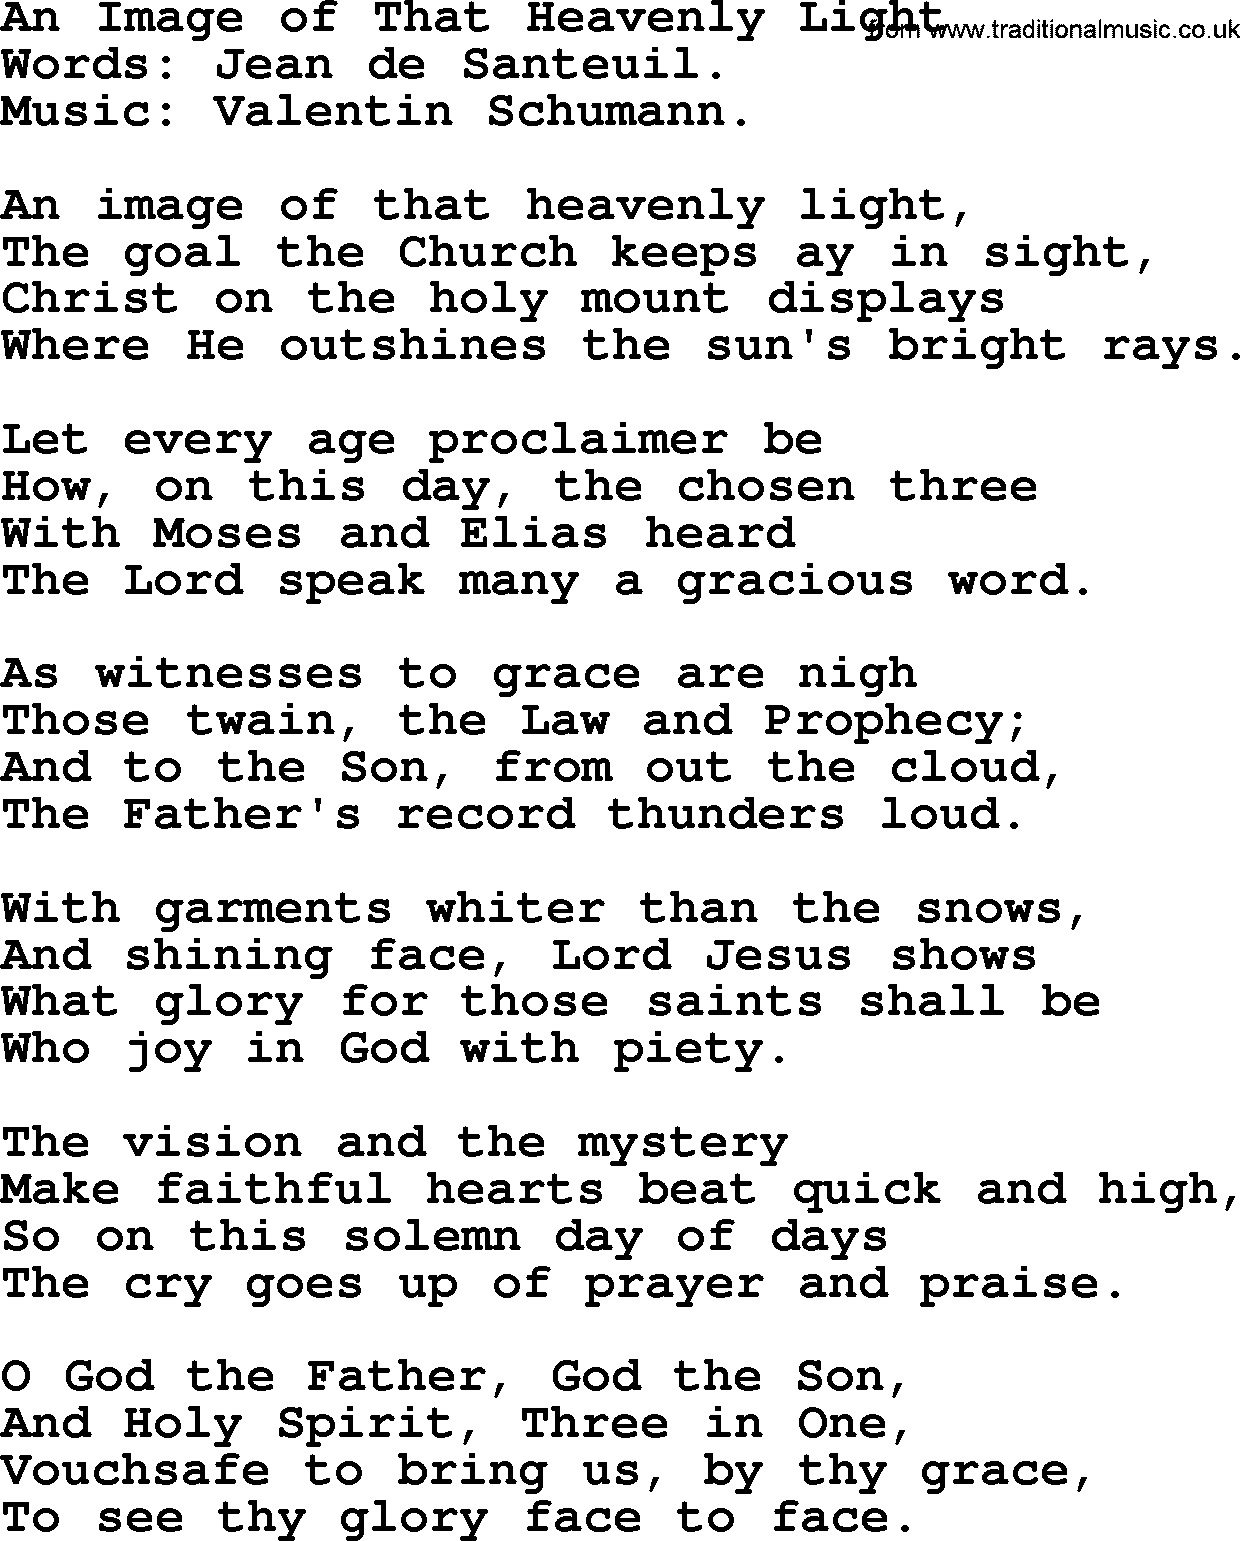 Hymns about The Trinity, title: An Image Of That Heavenly